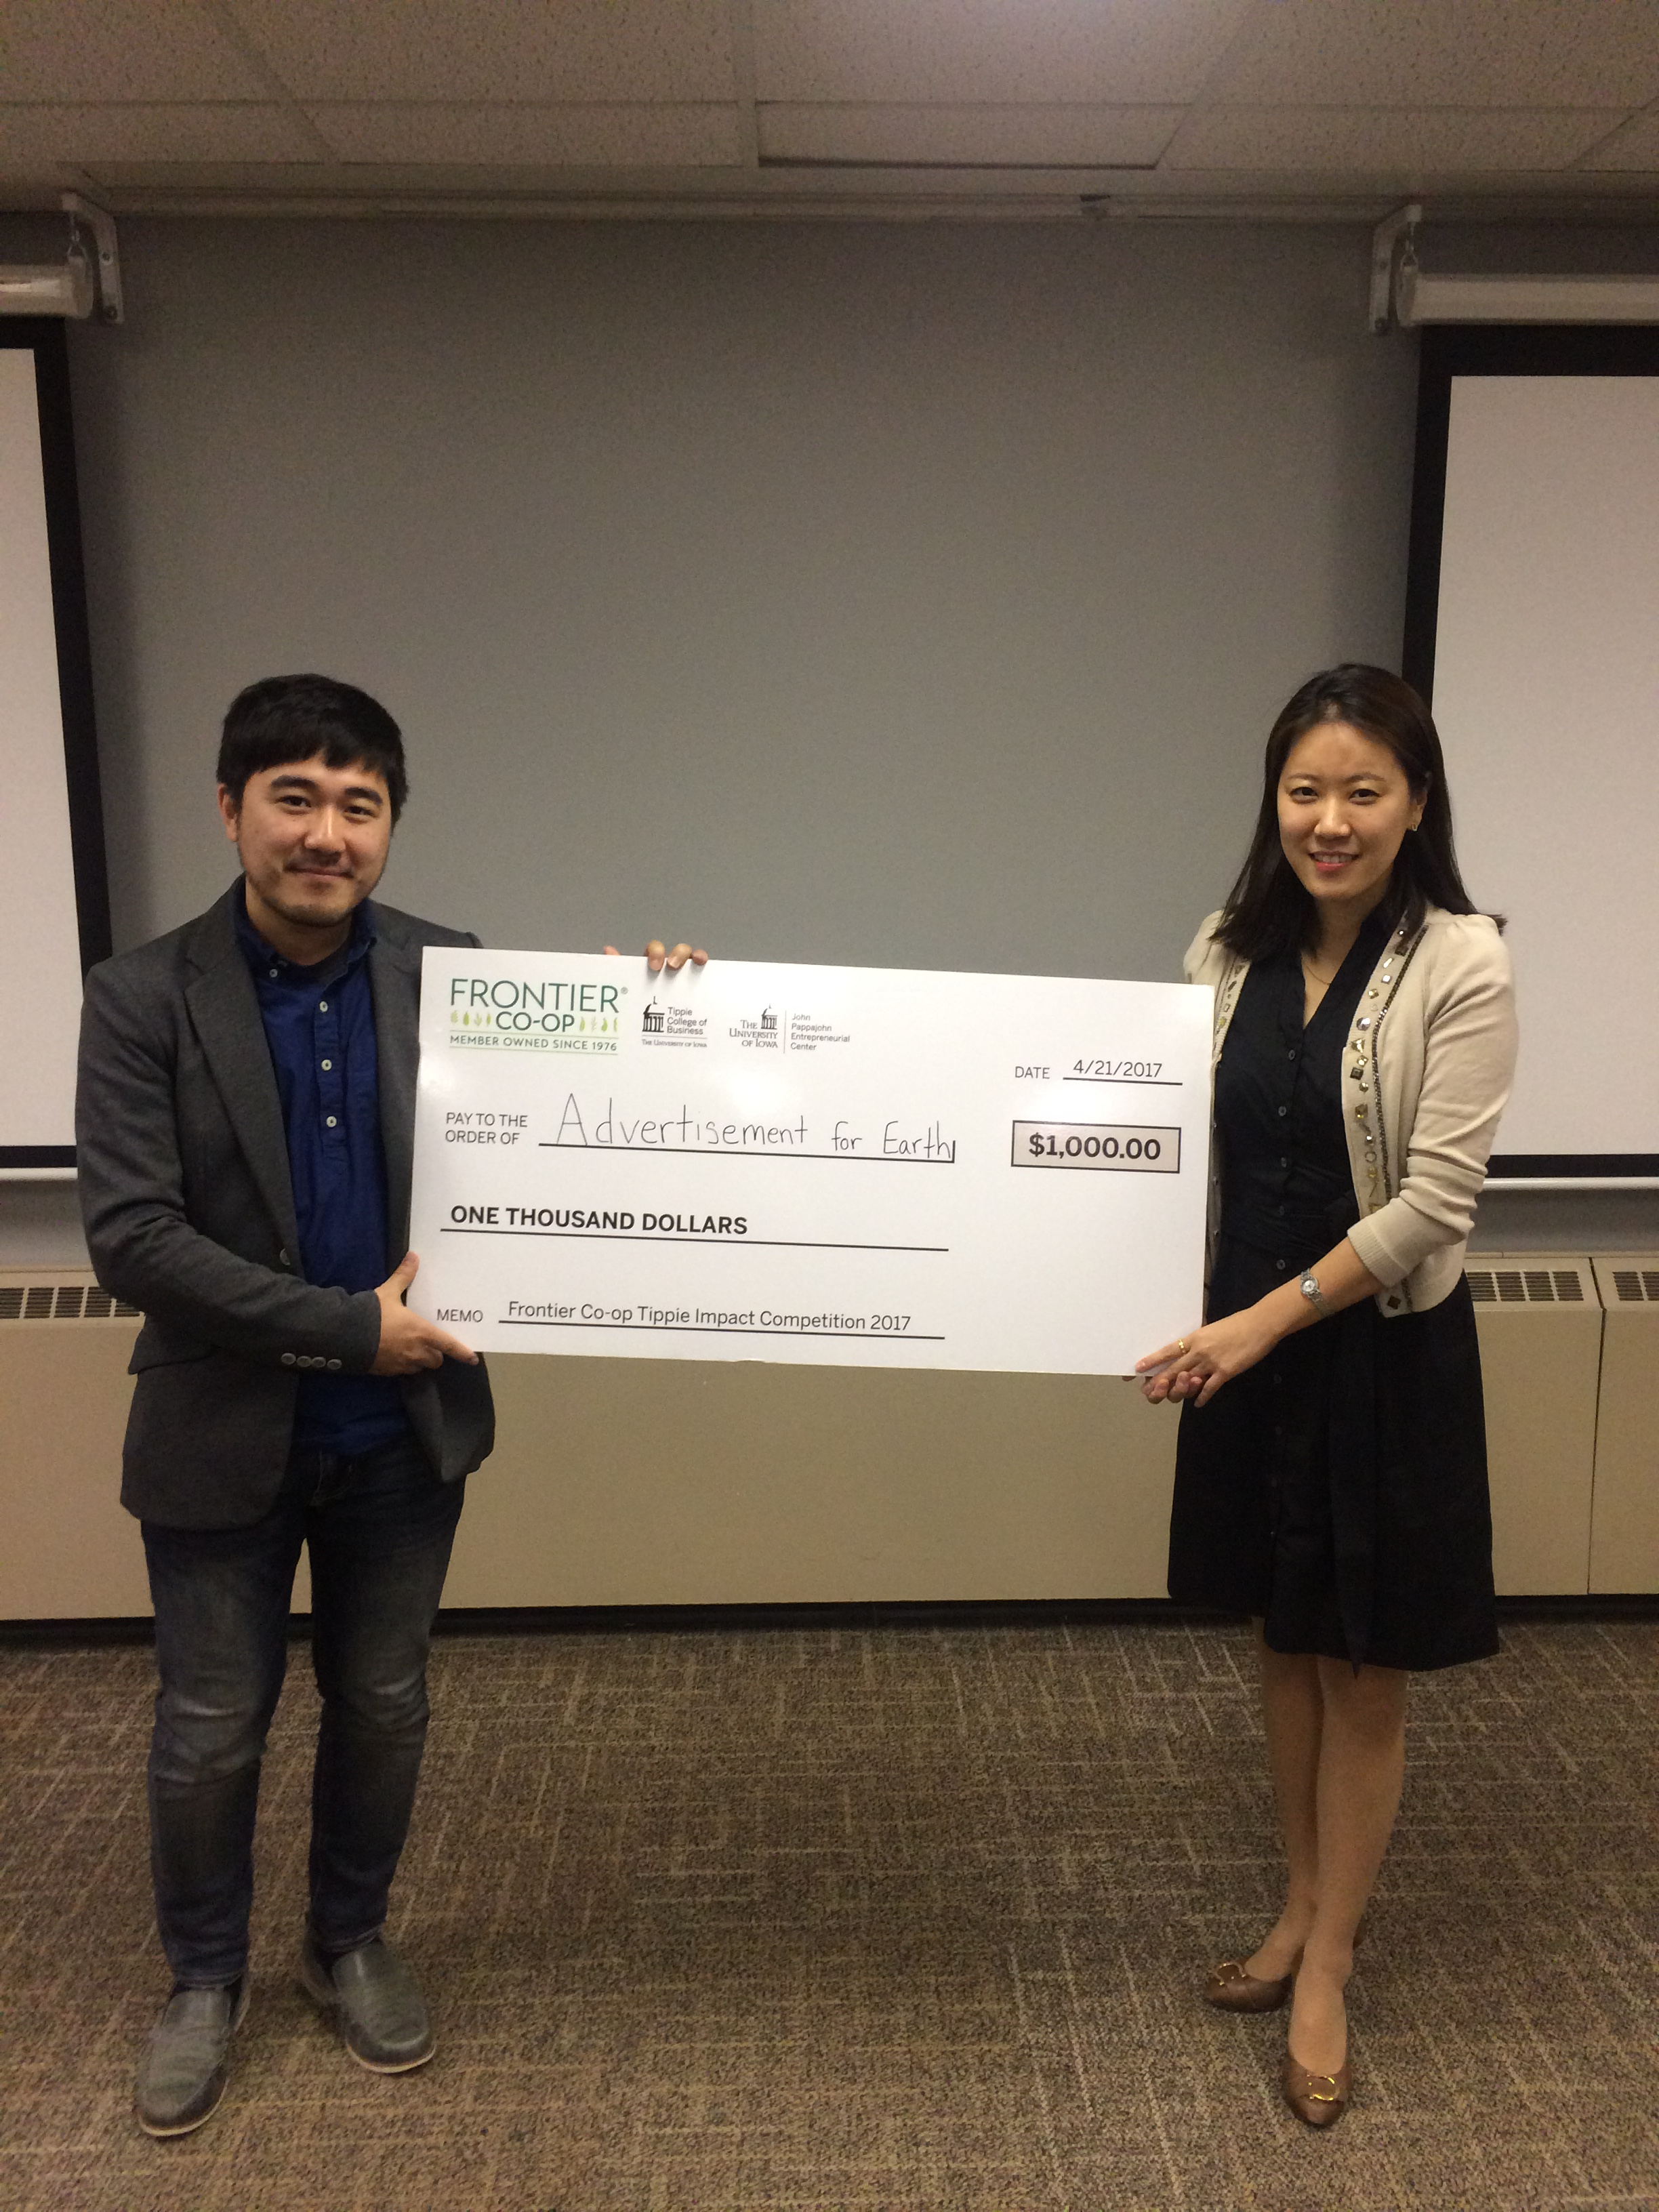 Students Win Prizes in Frontier Co-op - Tippie Impact Competition